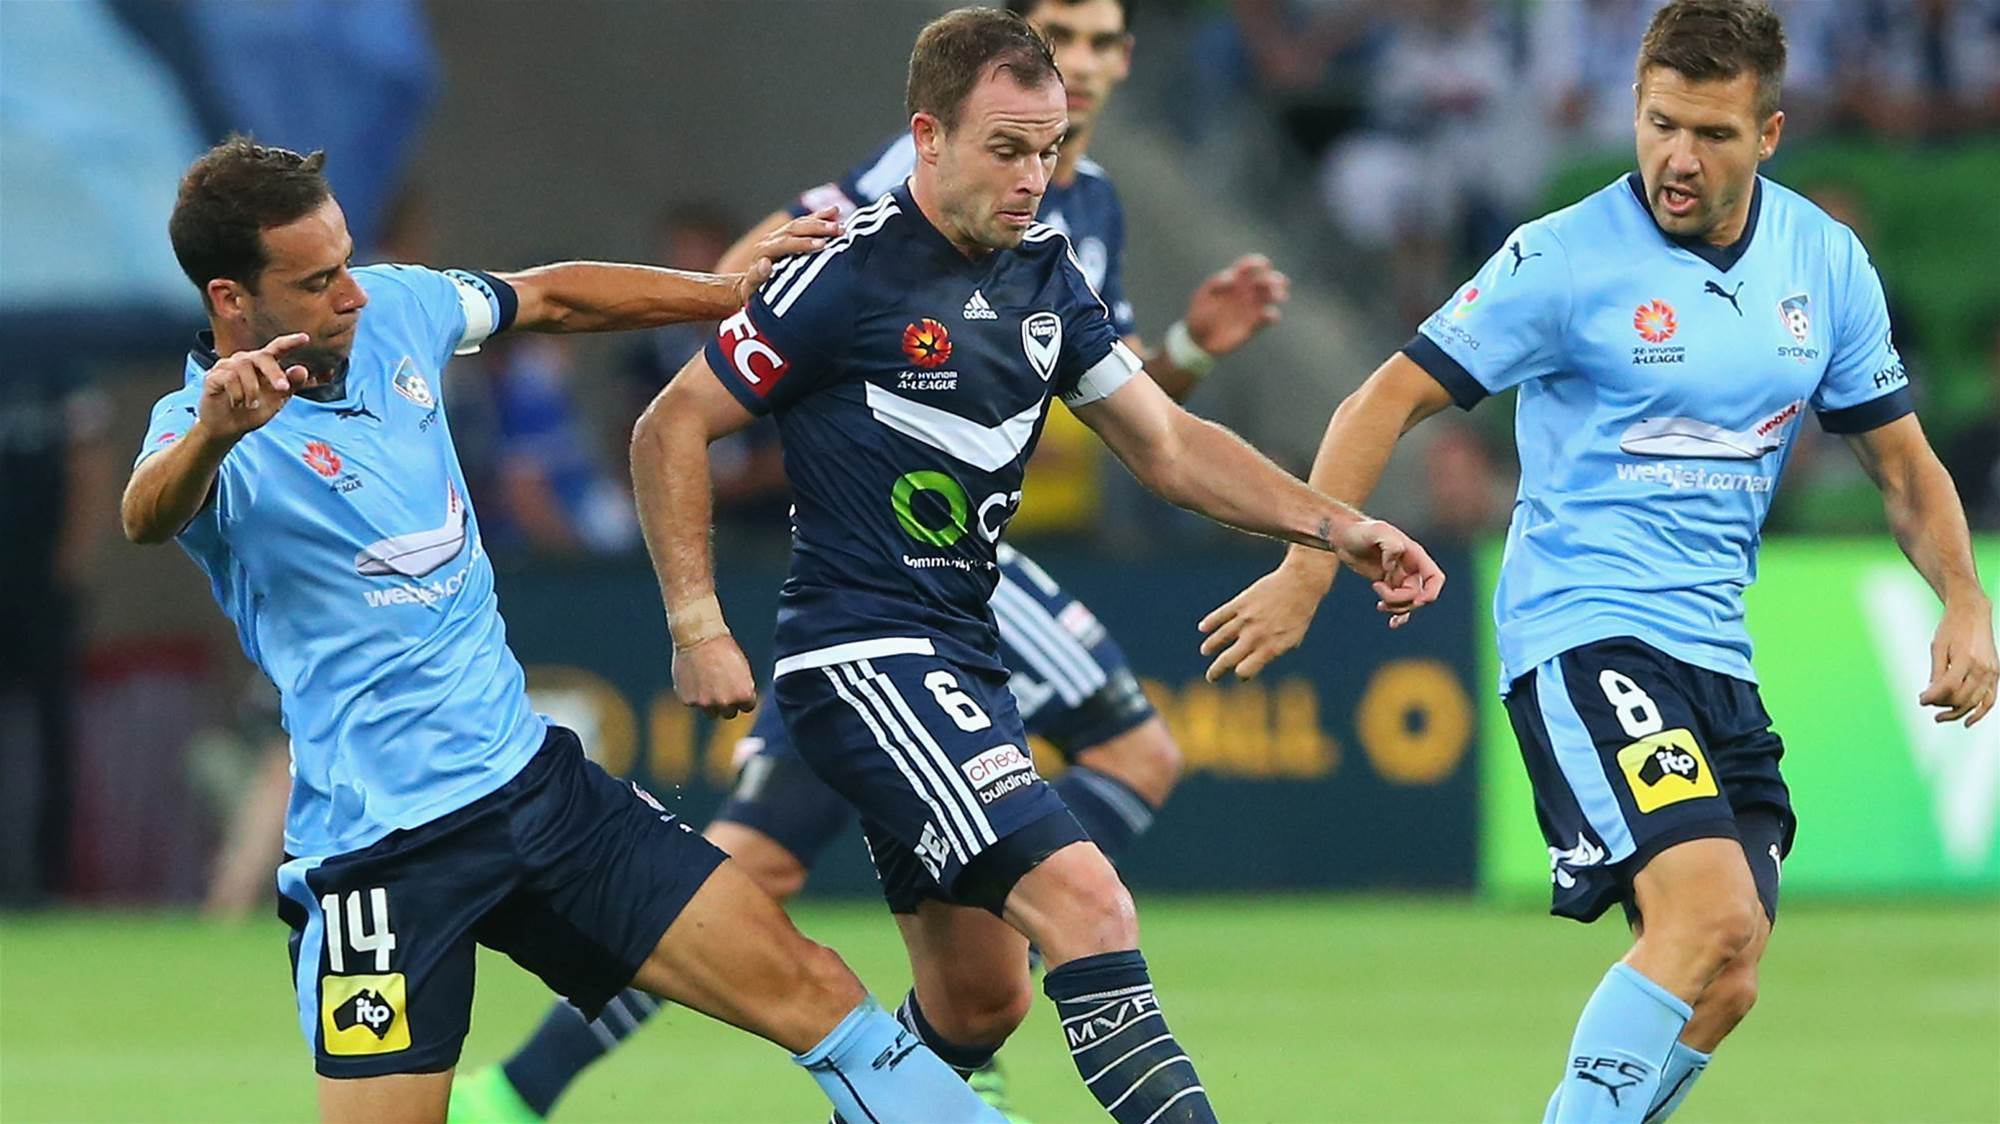 Broxham: We'll talk on the pitch